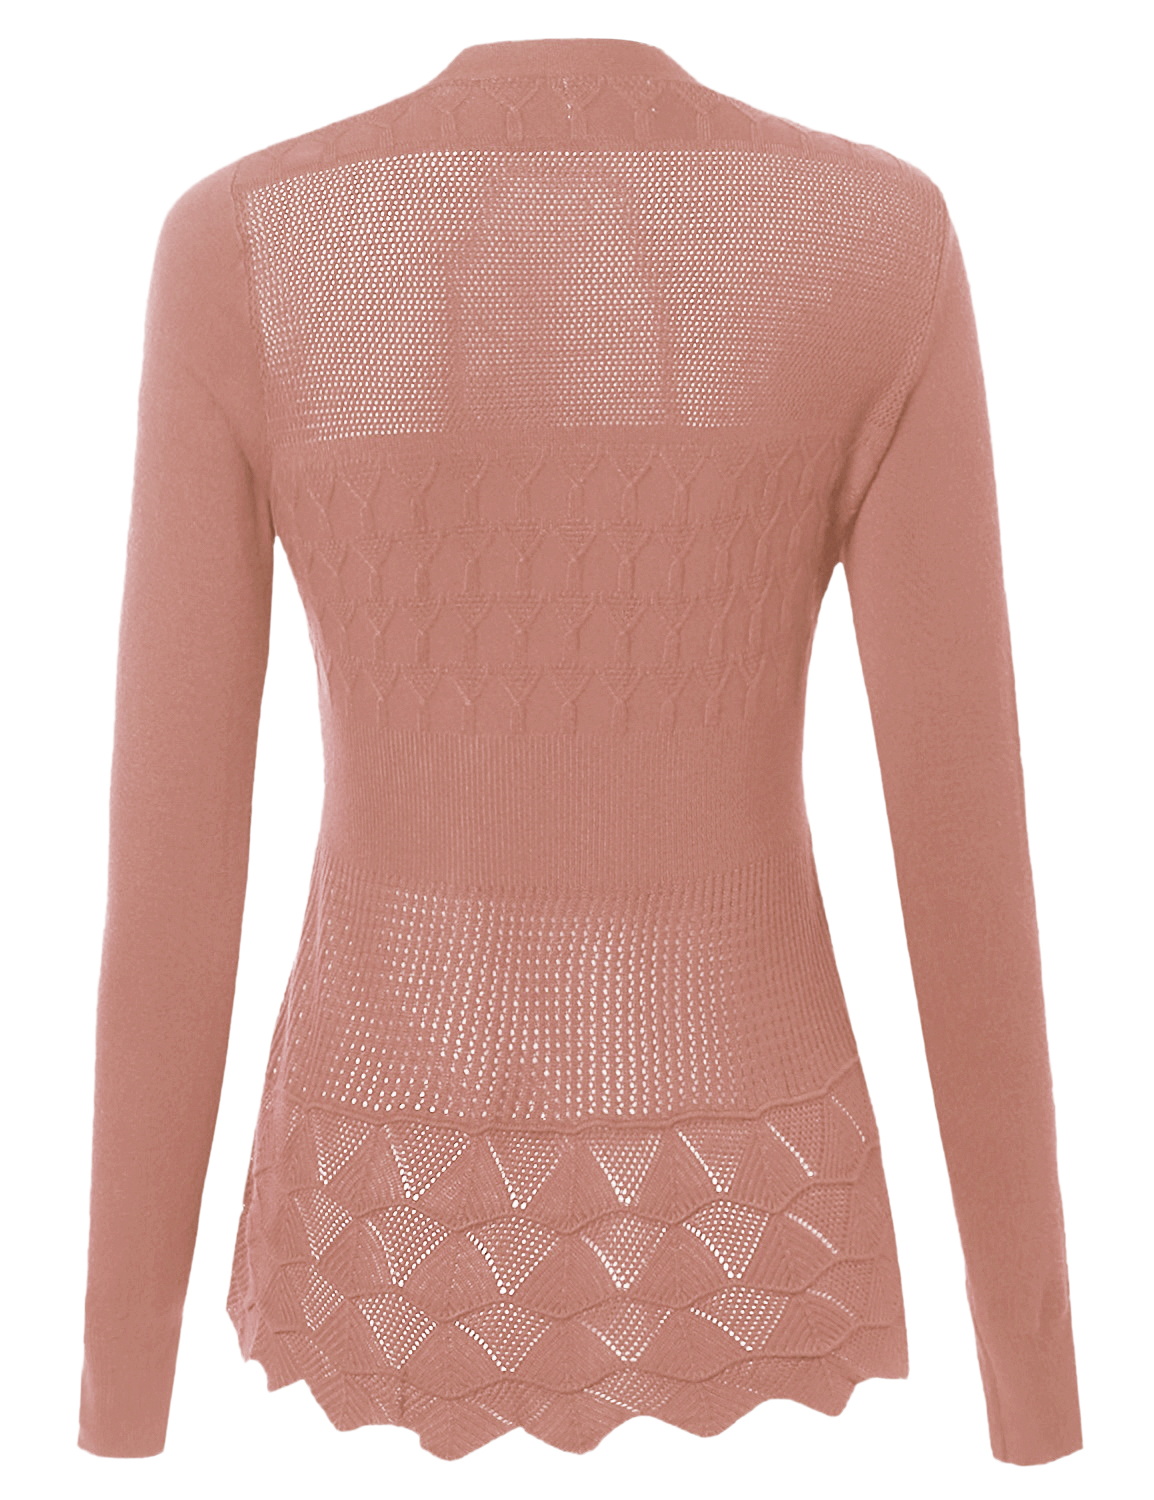 FashionOutfit Women's Open Front Long Sleeve Textured ...